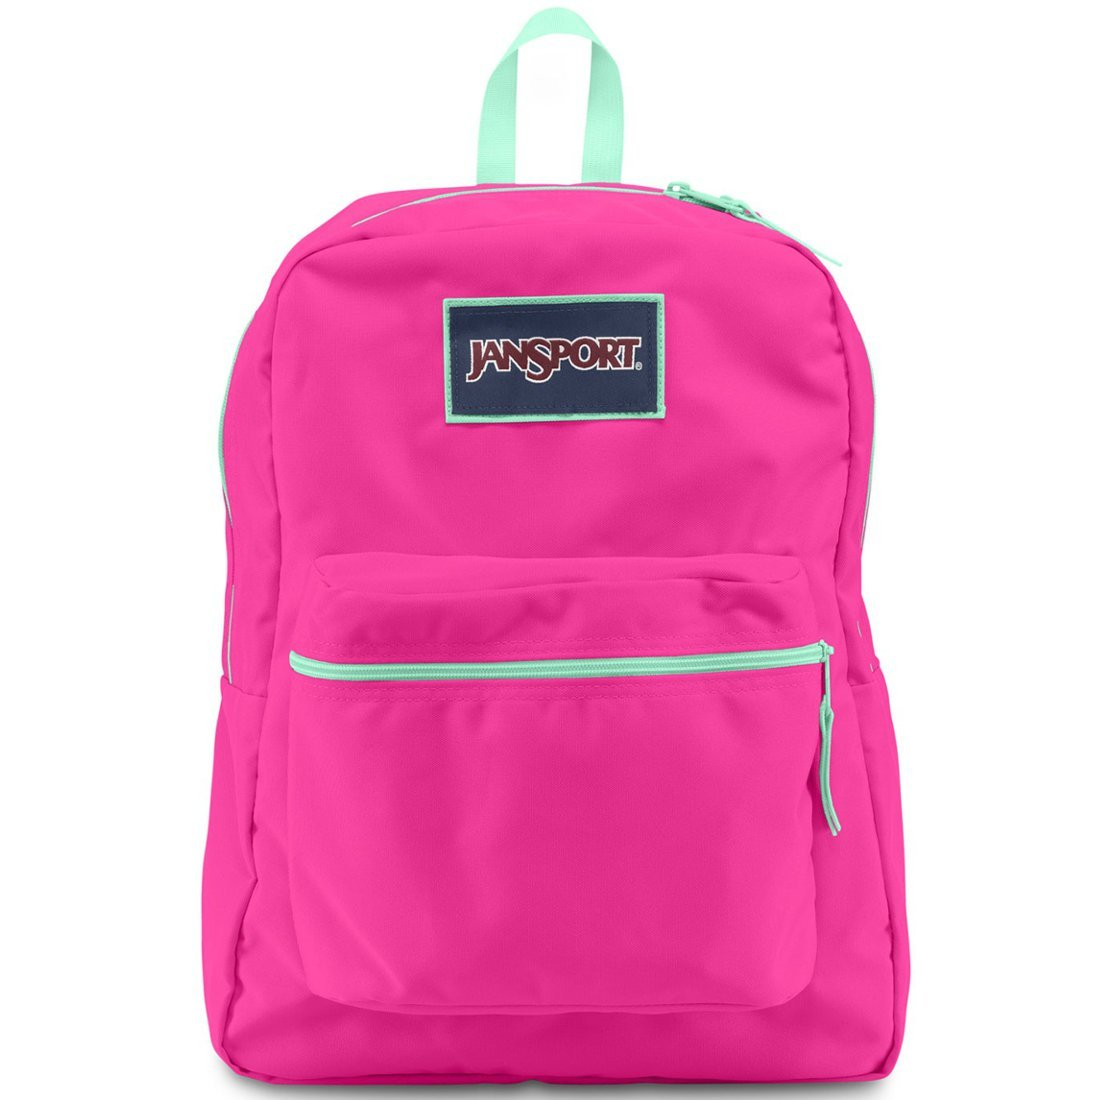 Where To Buy A Jansport Backpack 8n4aSEcp